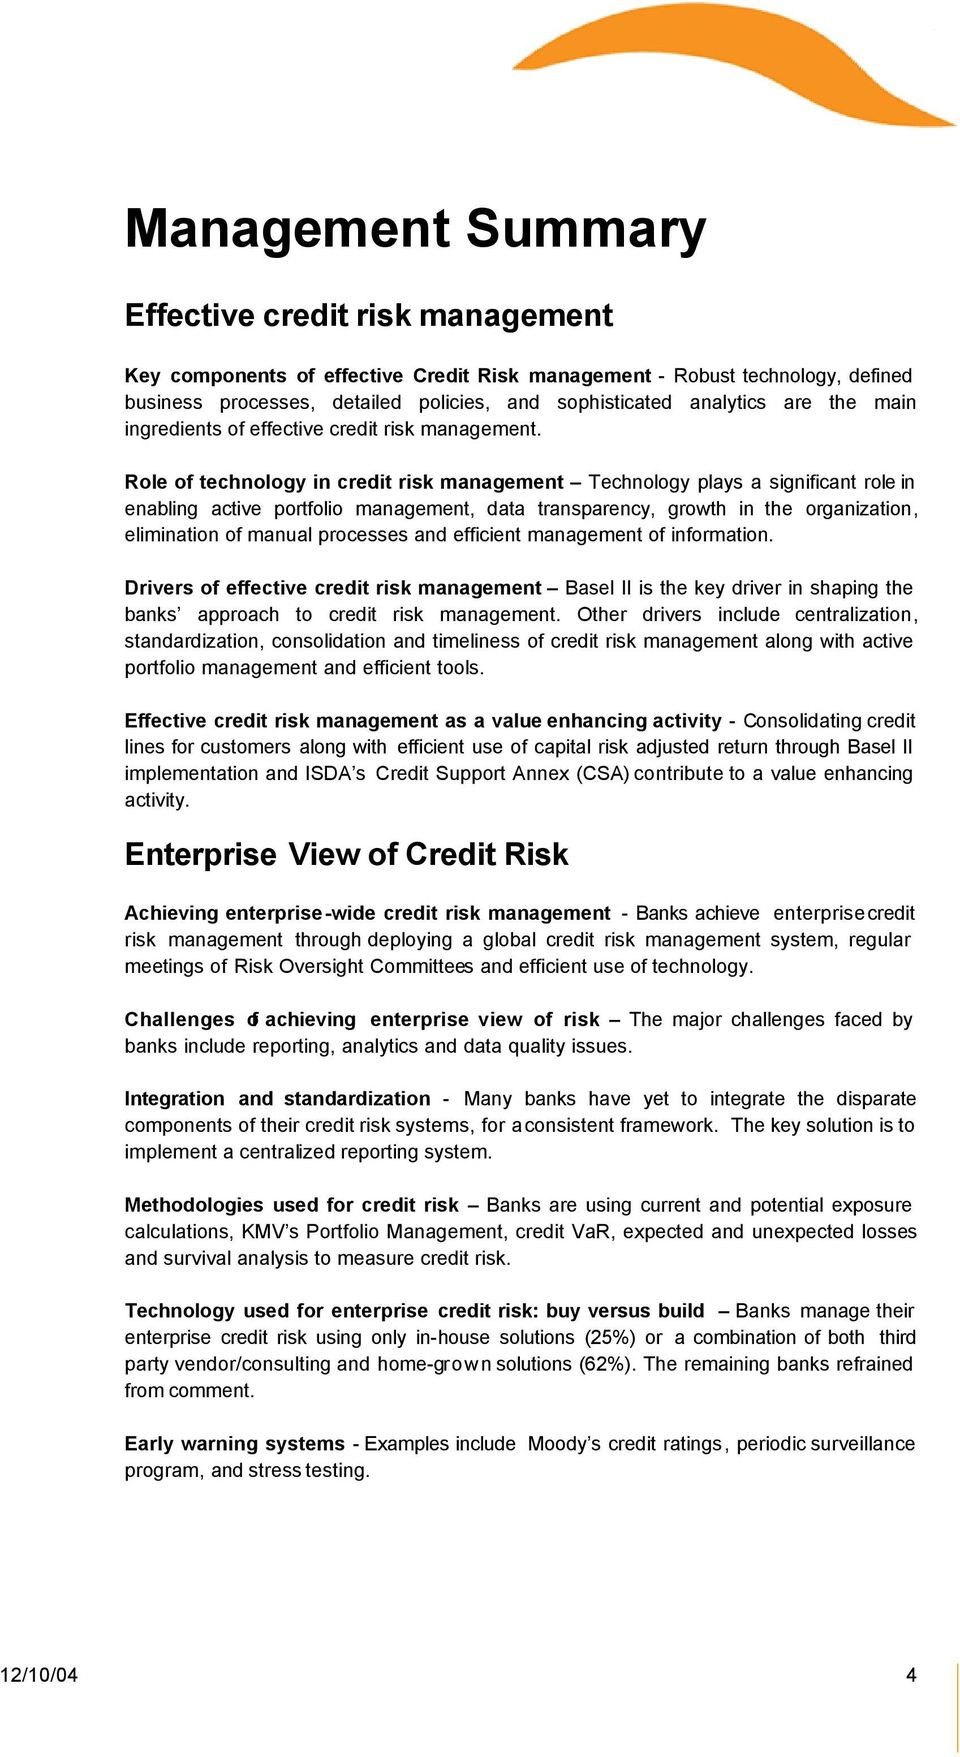 Role of technology in credit risk management Technology plays a significant role in enabling active portfolio management, data transparency, growth in the organization, elimination of manual